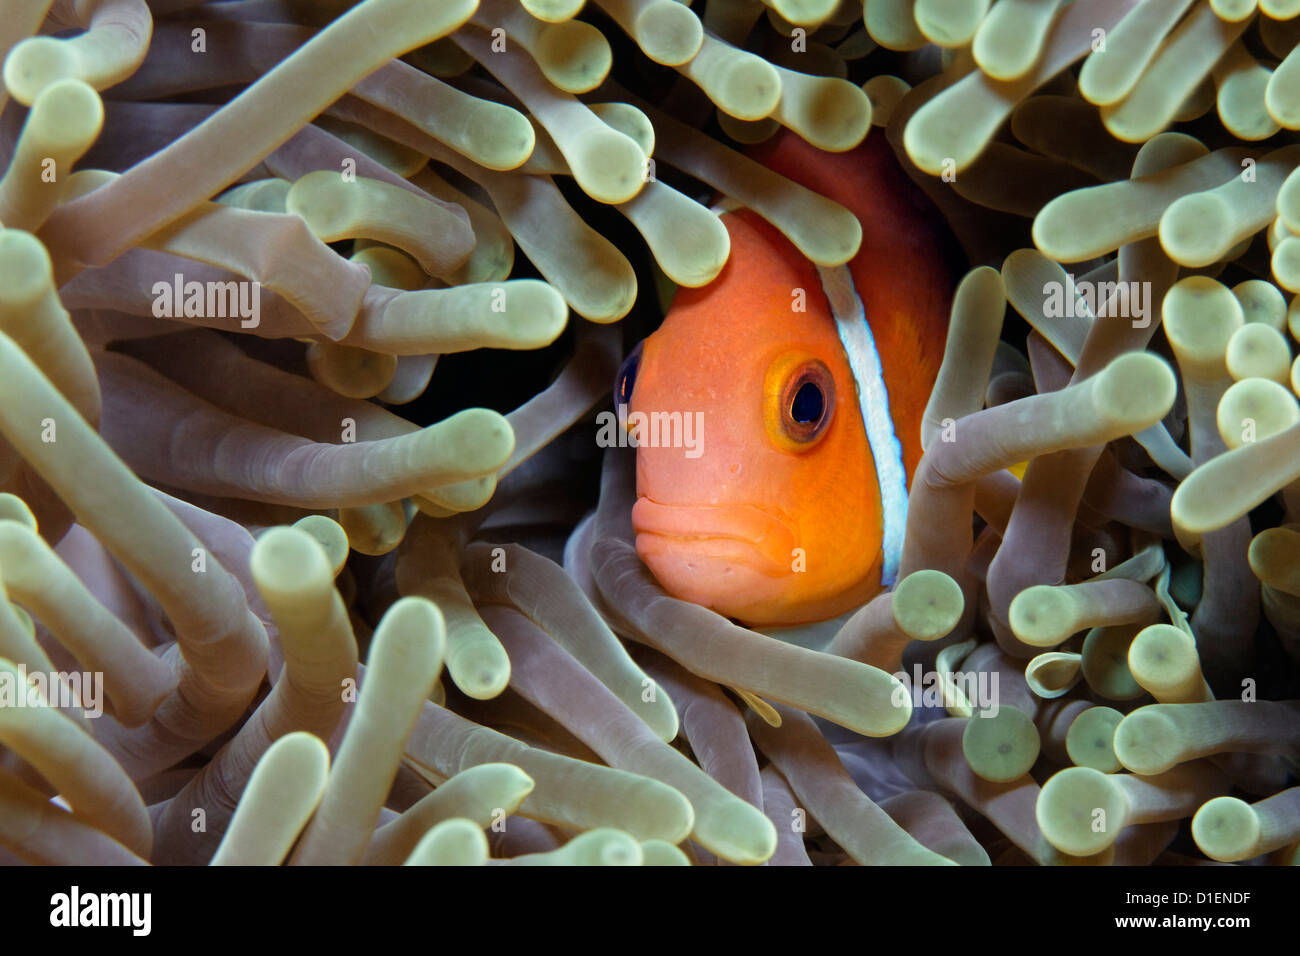 Maldive anemonefish (Amphiprion nigripes) hiding in an anemone at Baa Atoll, Maldives, underwater shot - Stock Image